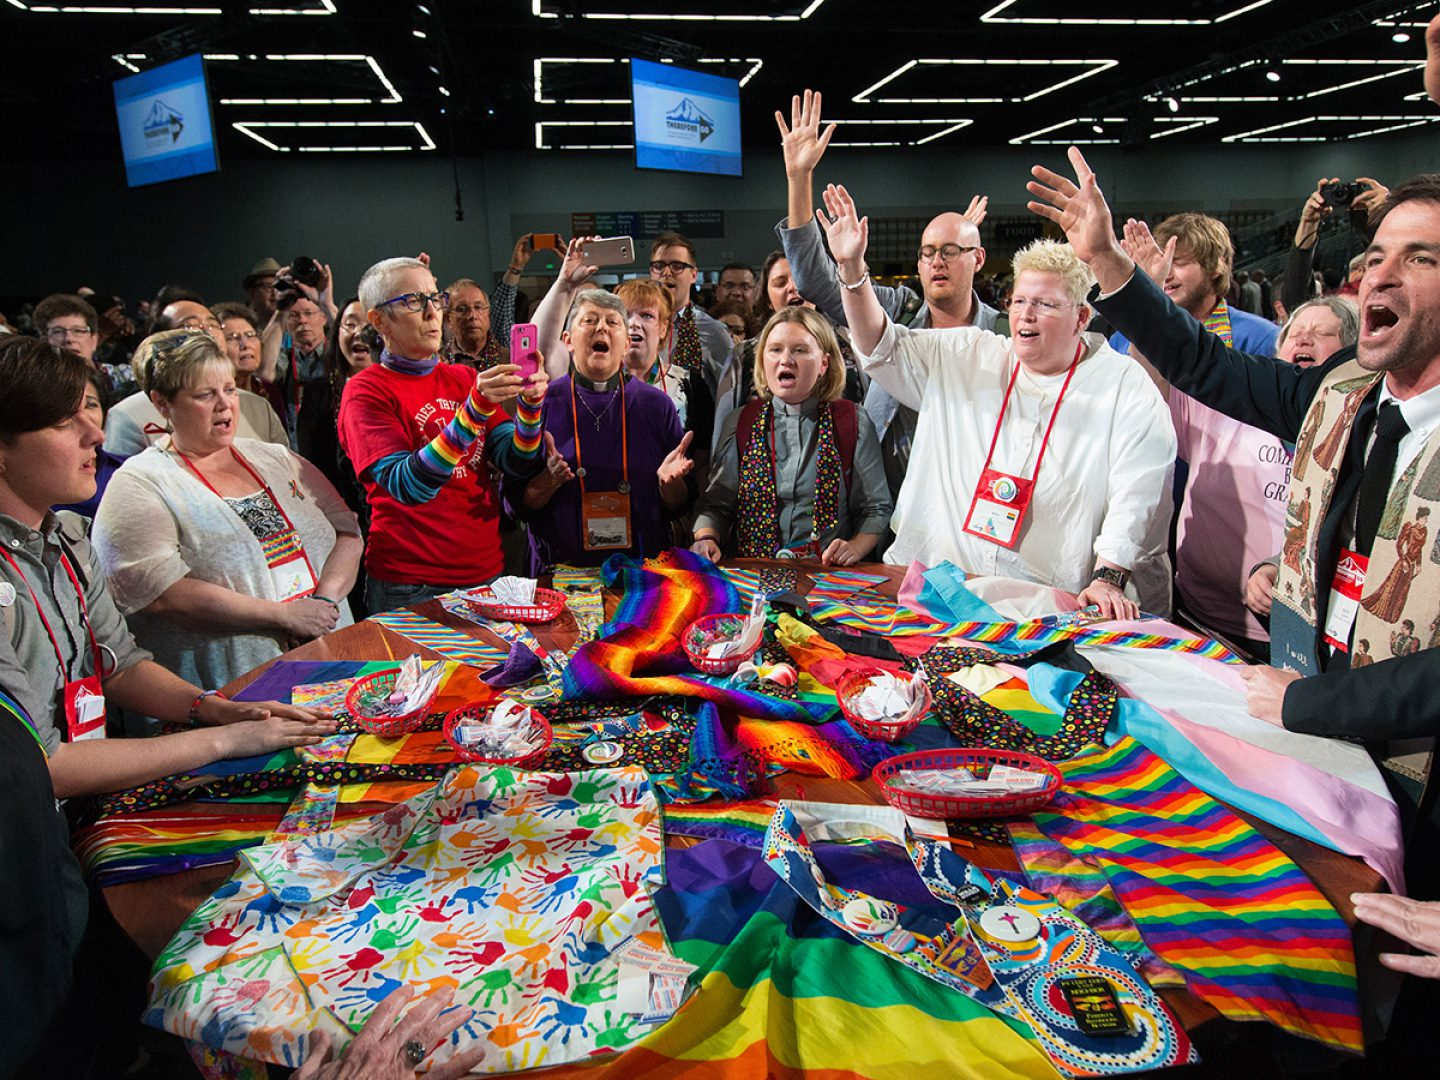 Supporters of LGBTQ rights in The United Methodist Church rally around the central Communion table at the close of the 2016 United Methodist General Conference in Portland, Ore. (Photo: Mike DuBose, courtesy of UMNS)